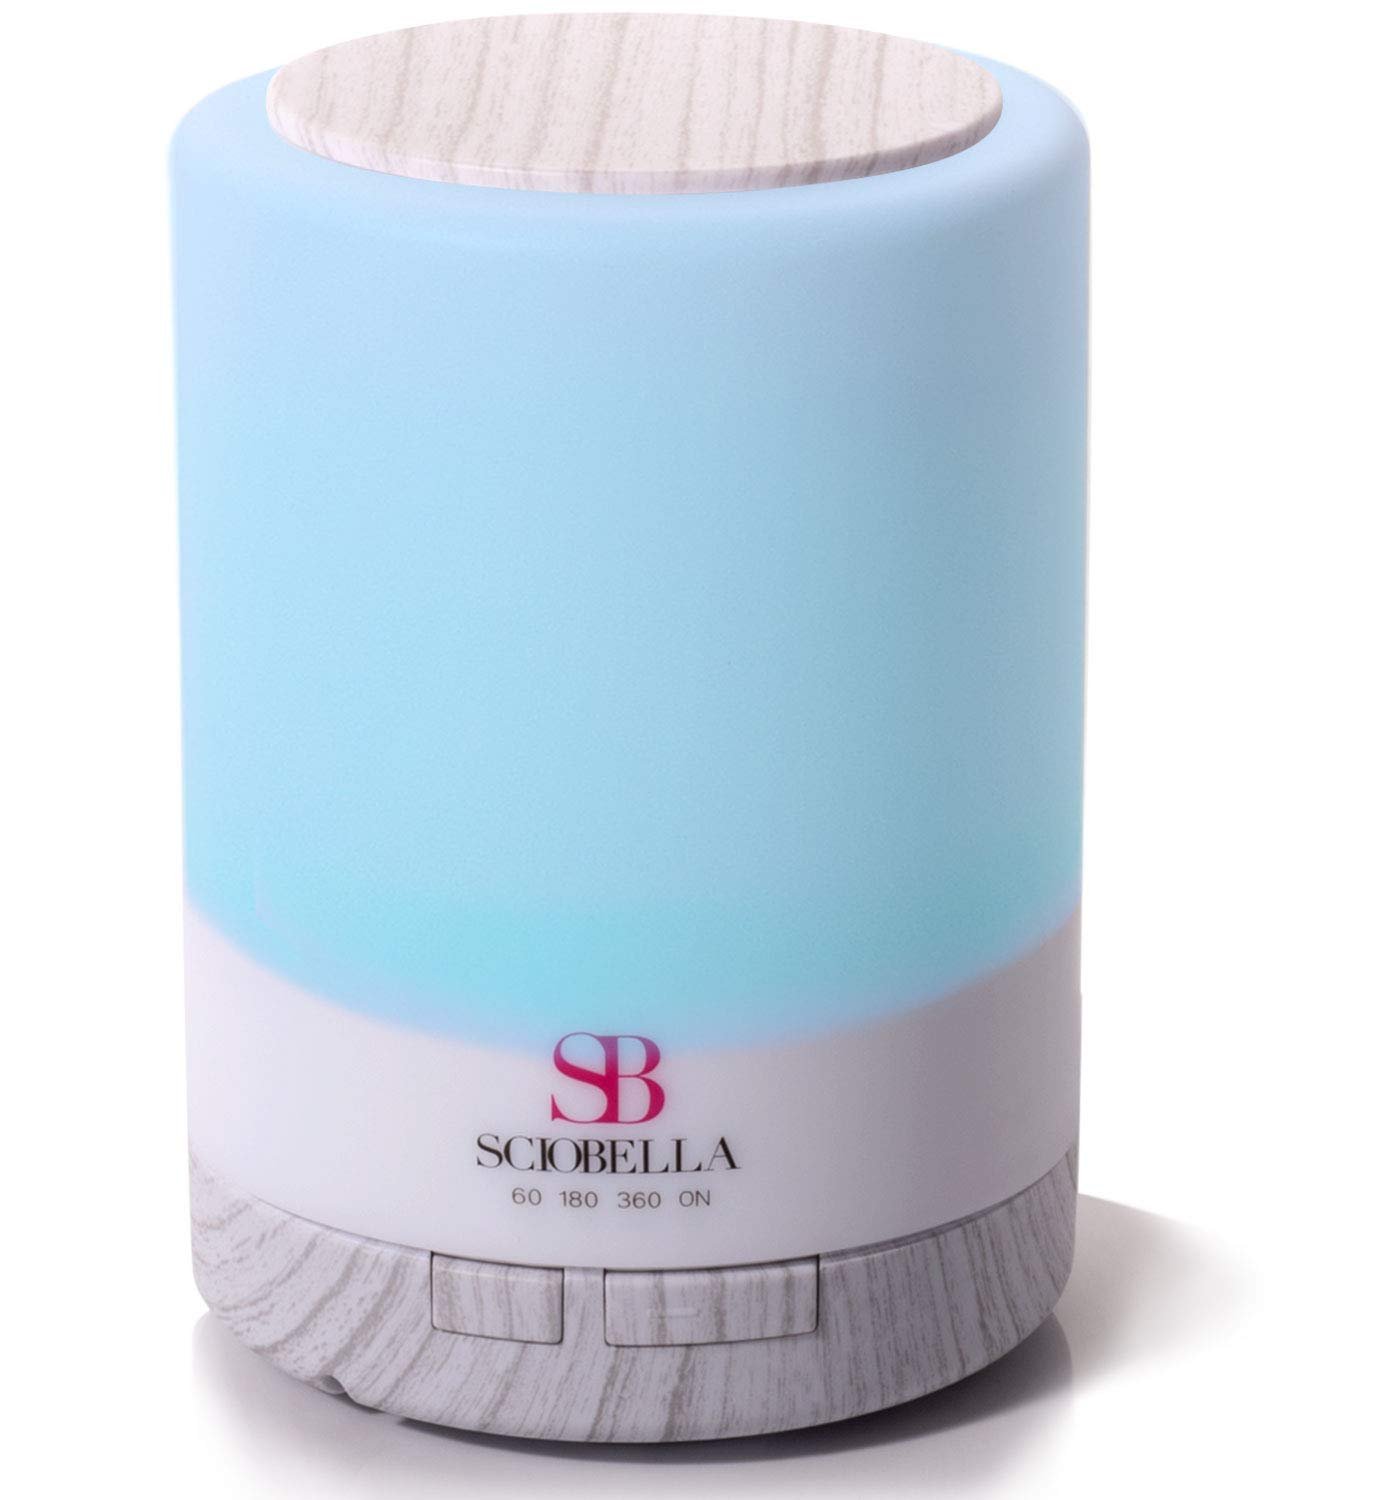 Sciobella Aromatherapy Essential oil Diffuser Ultrasonic Cool Mist and Lighting at once for Bedroom office (White wood)